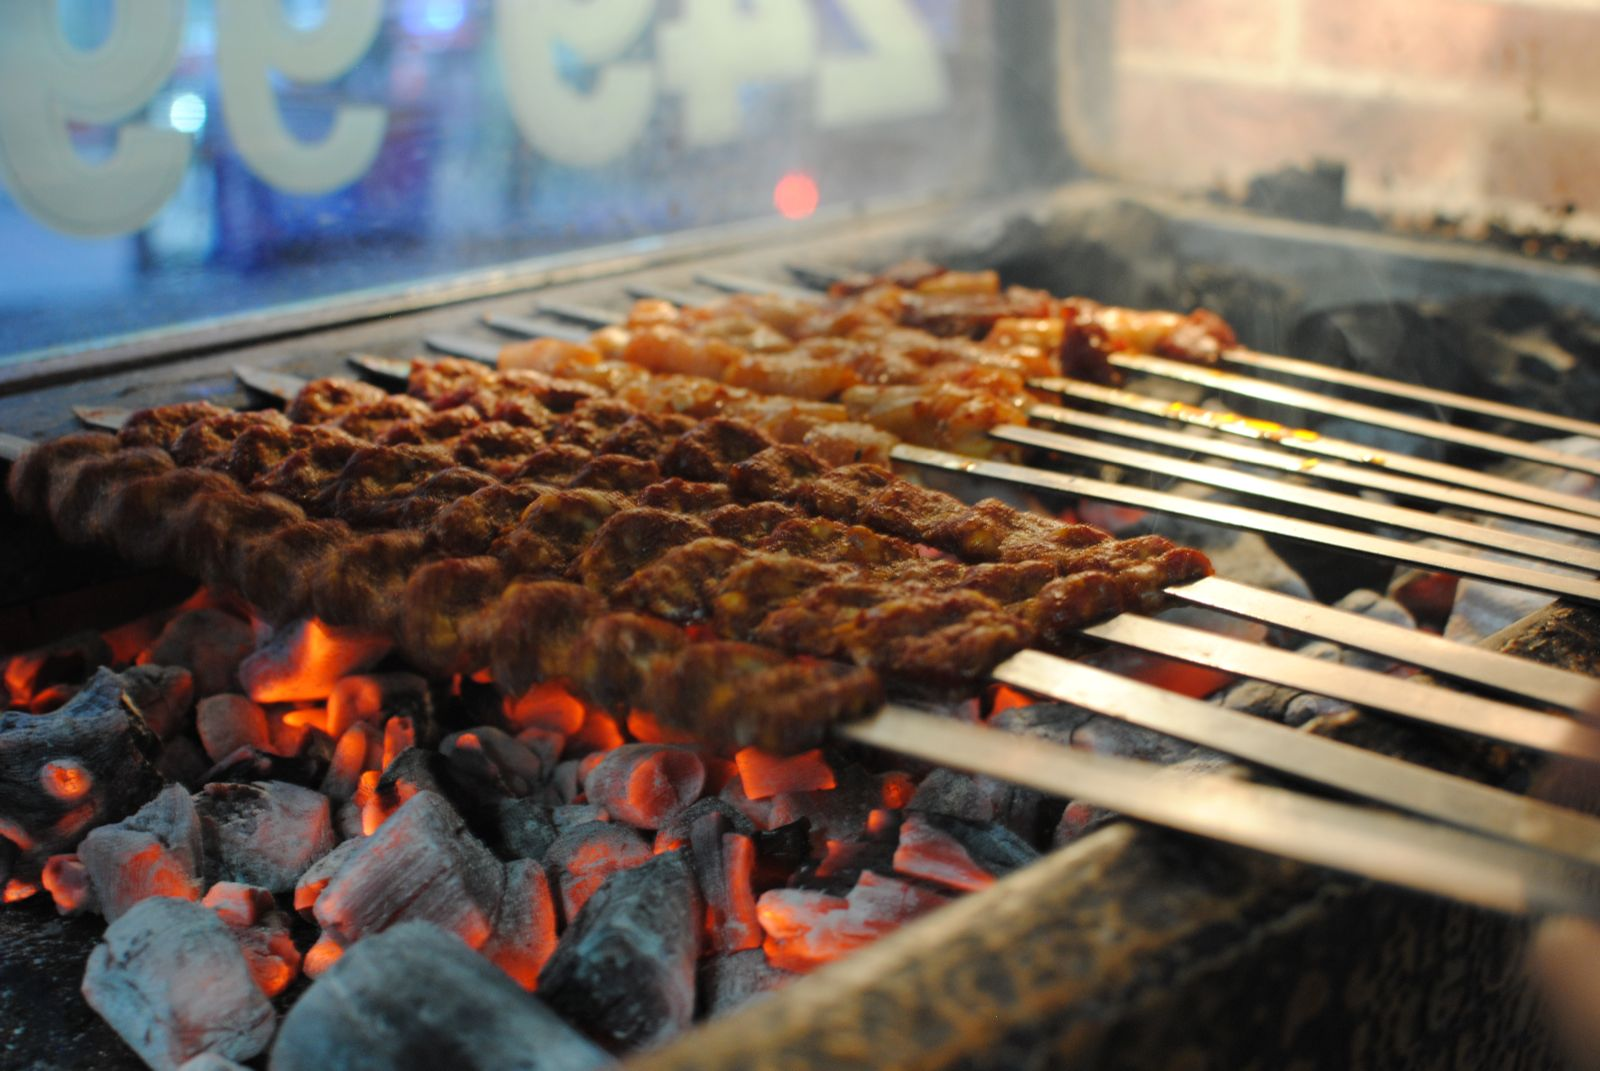 Istanbul Street Food What To Expect When Eating In Turkey Property Turkey